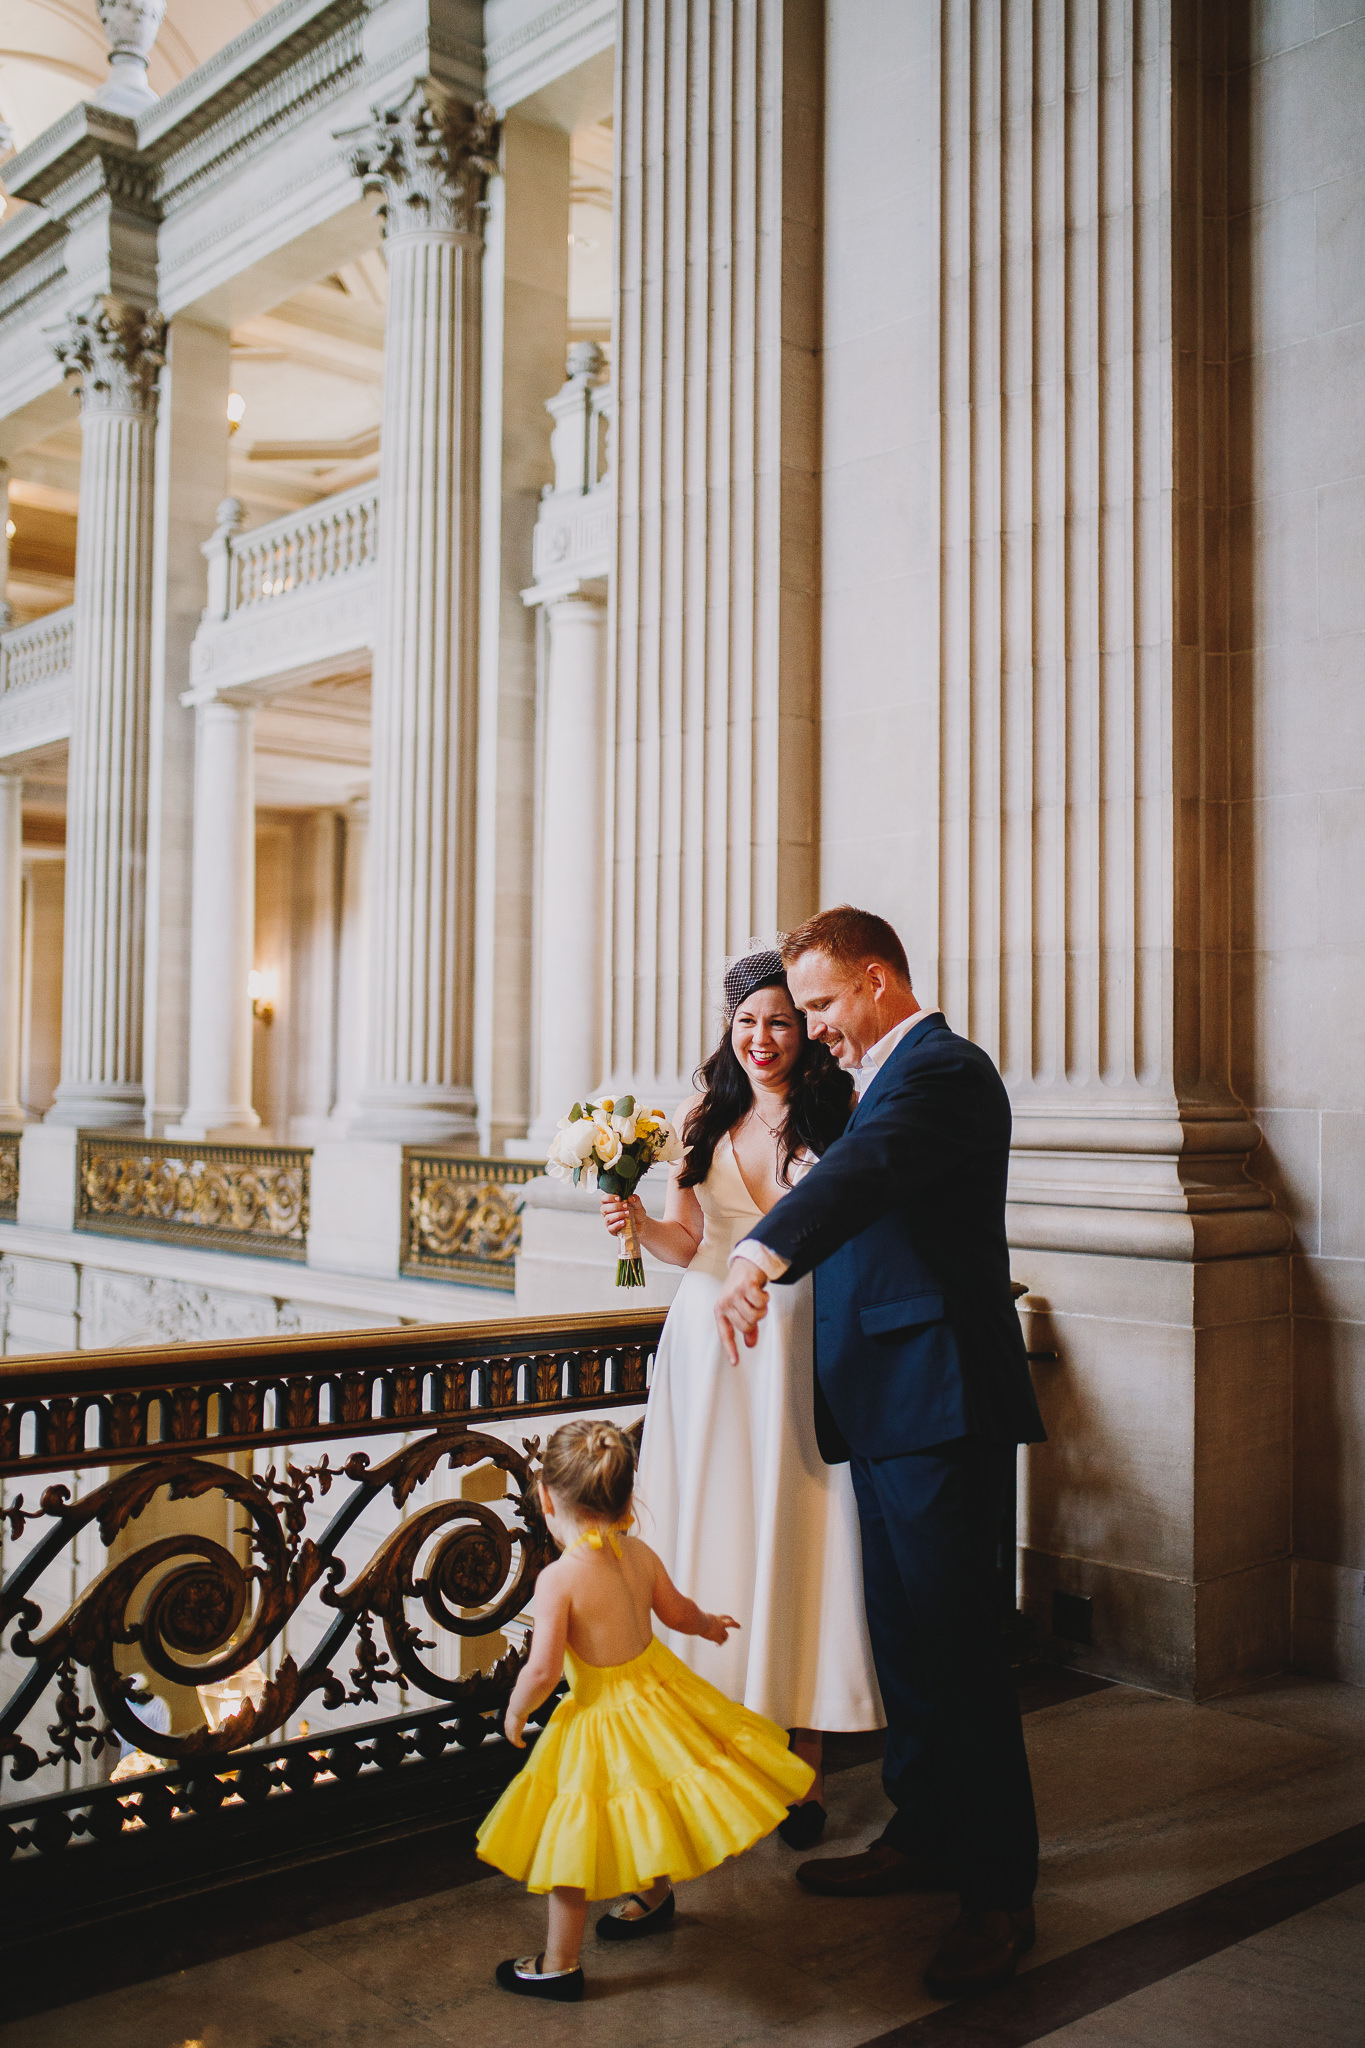 Archer Inspired Photography SF City Hall Elopement Wedding Lifestyle Documentary Affordable Photographer-66.jpg